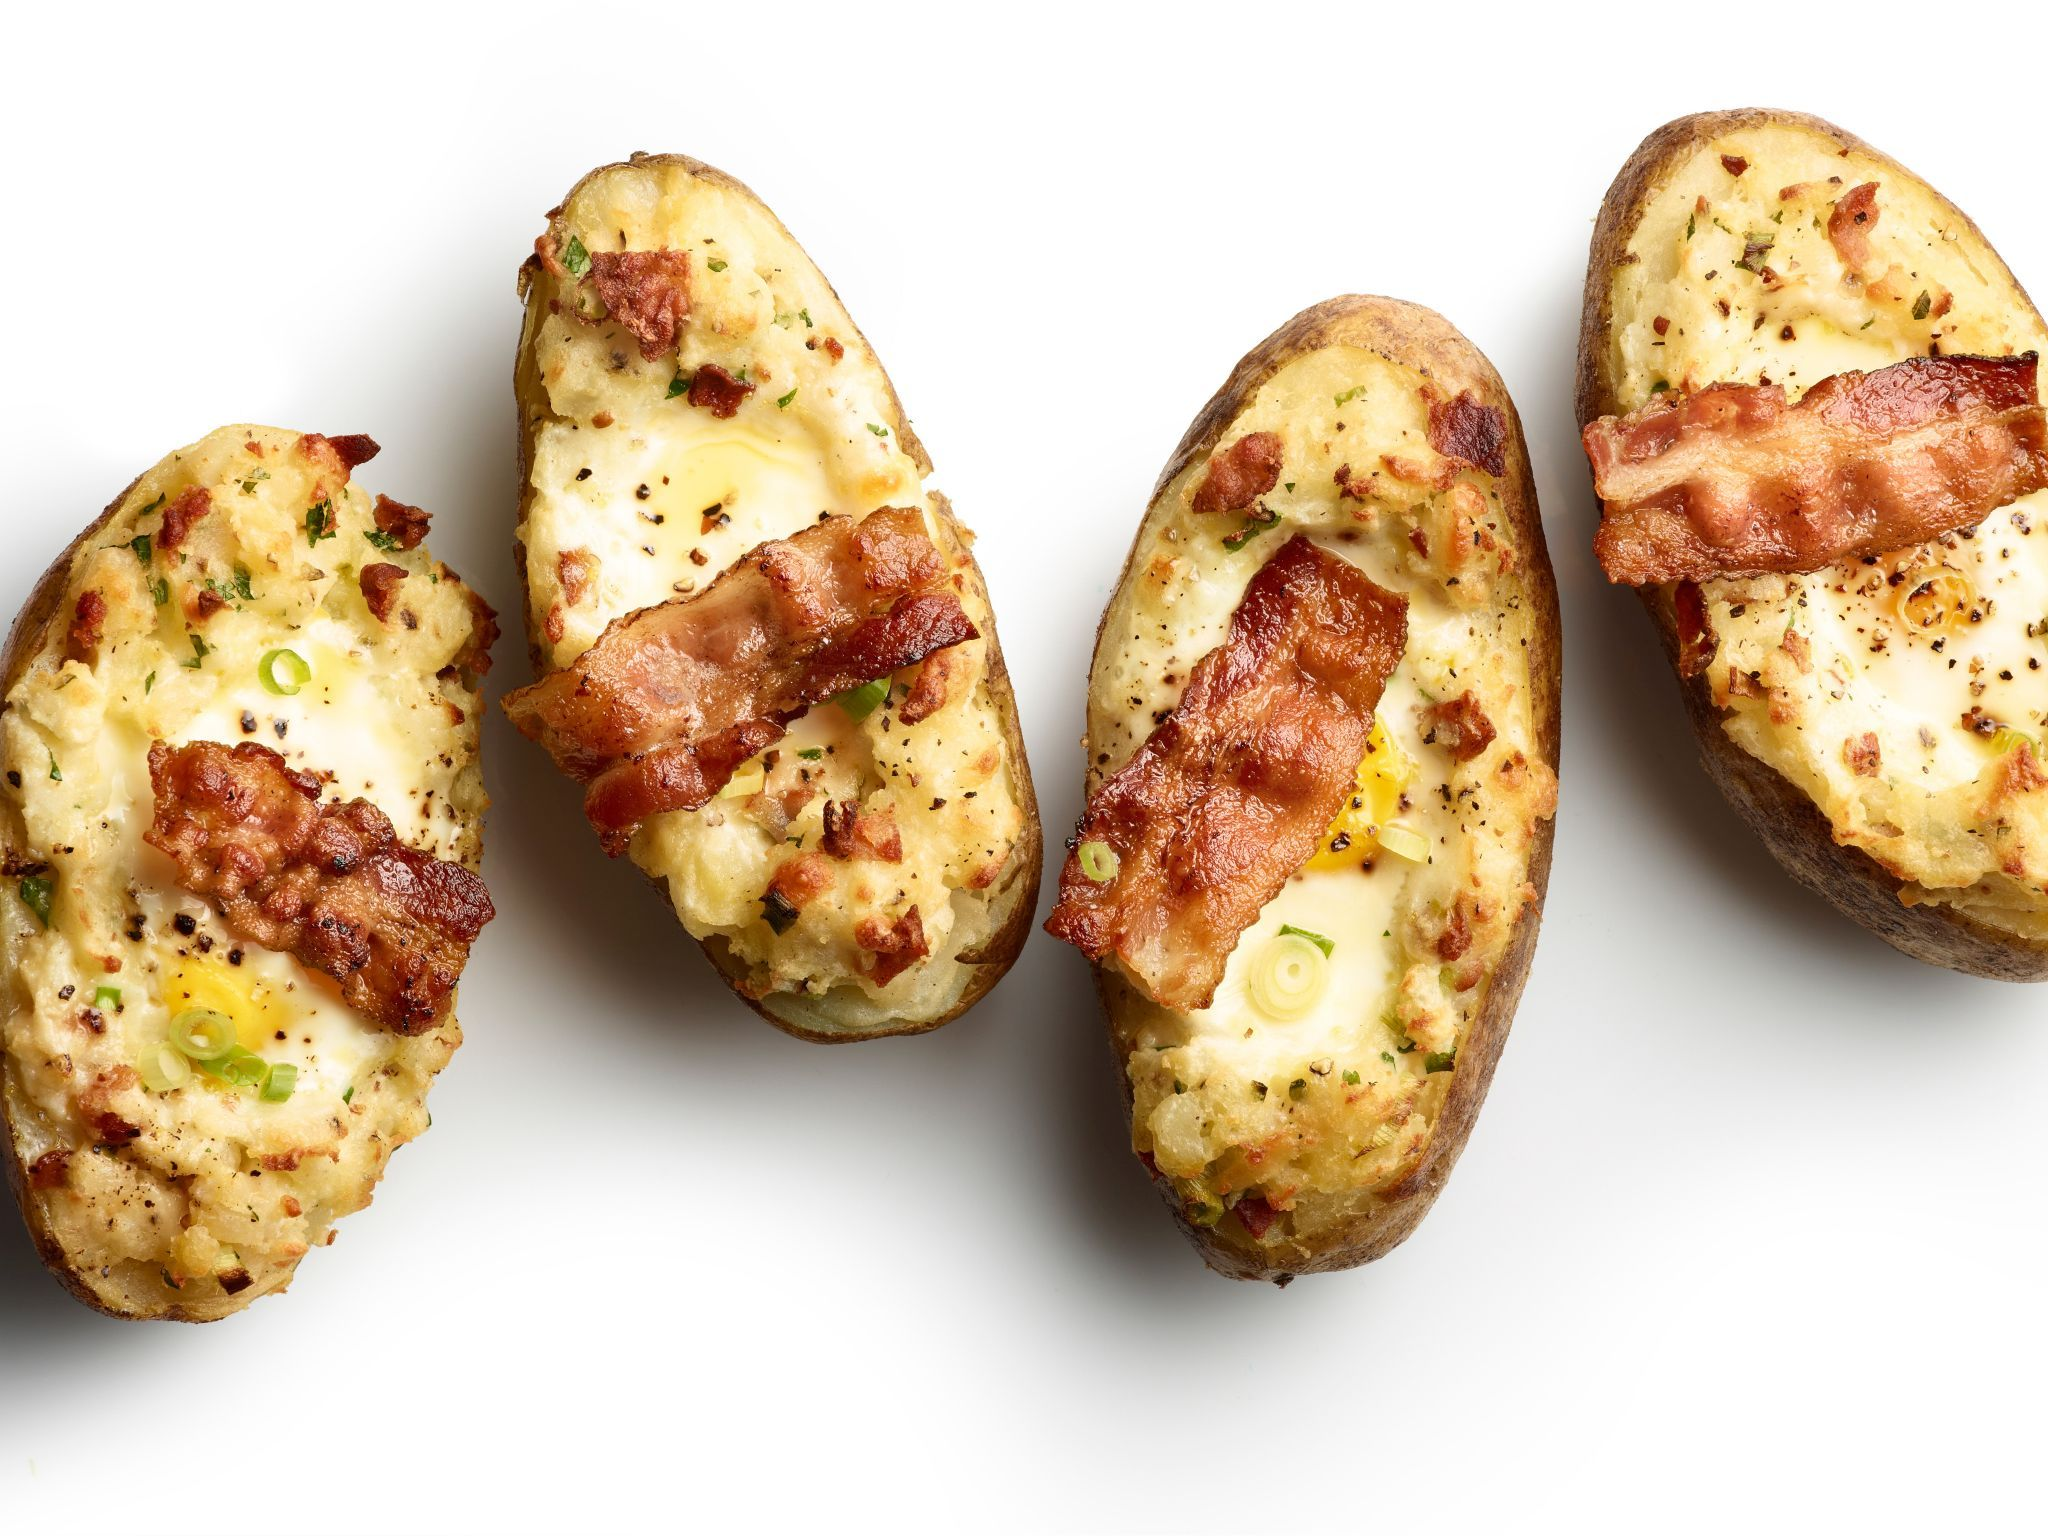 Twice baked potatoes with bacon and eggs recipe bacon egg and twice baked potatoes with bacon and eggs recipe bacon egg and foods forumfinder Gallery